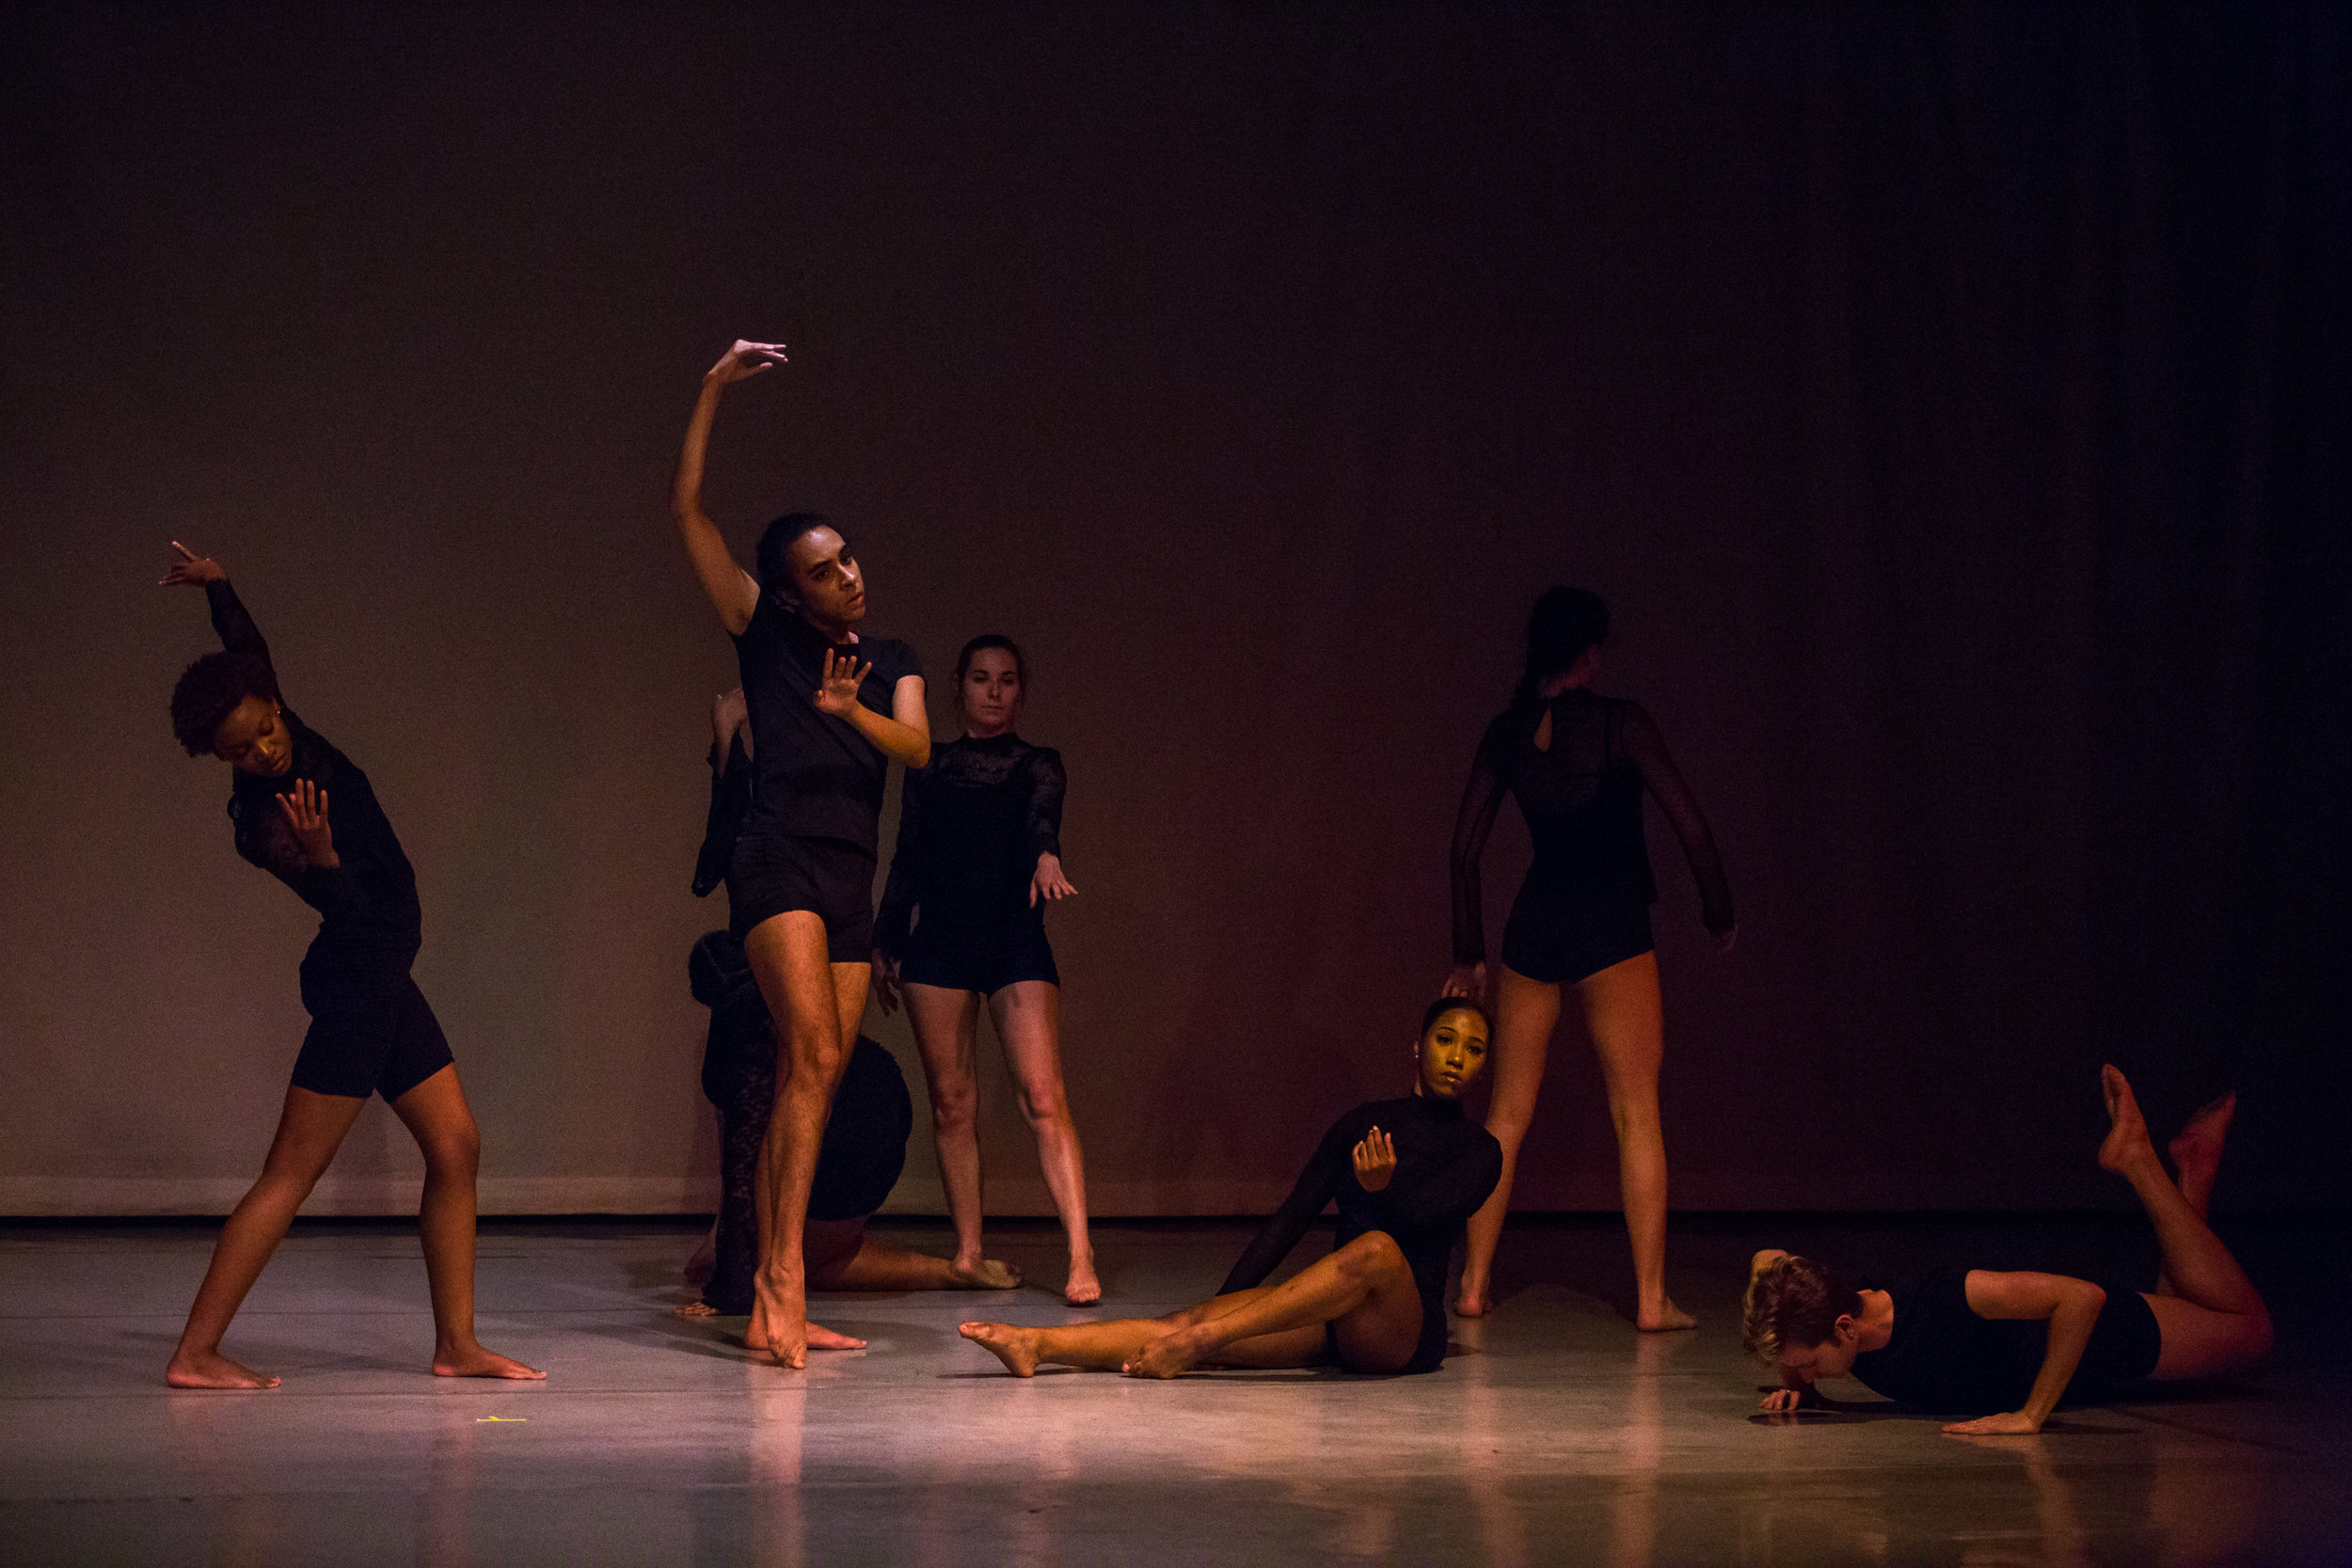 CPCC_DANCE_ShadowsLight-84.jpg